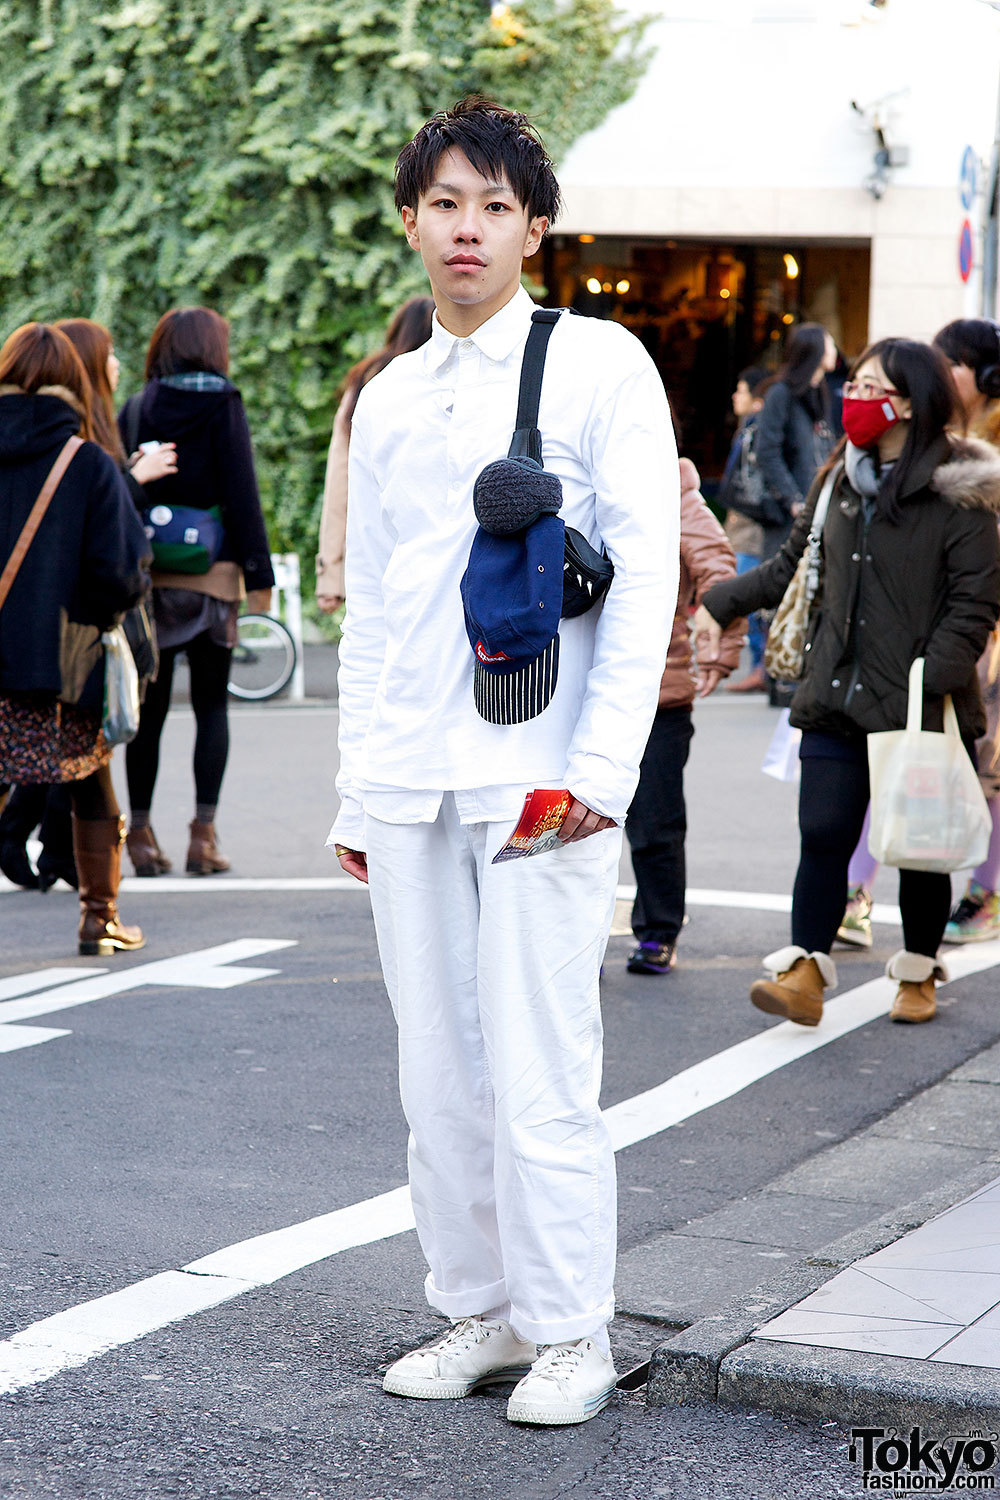 Supreme, Comme des Garcons and H&M in Harajuku.